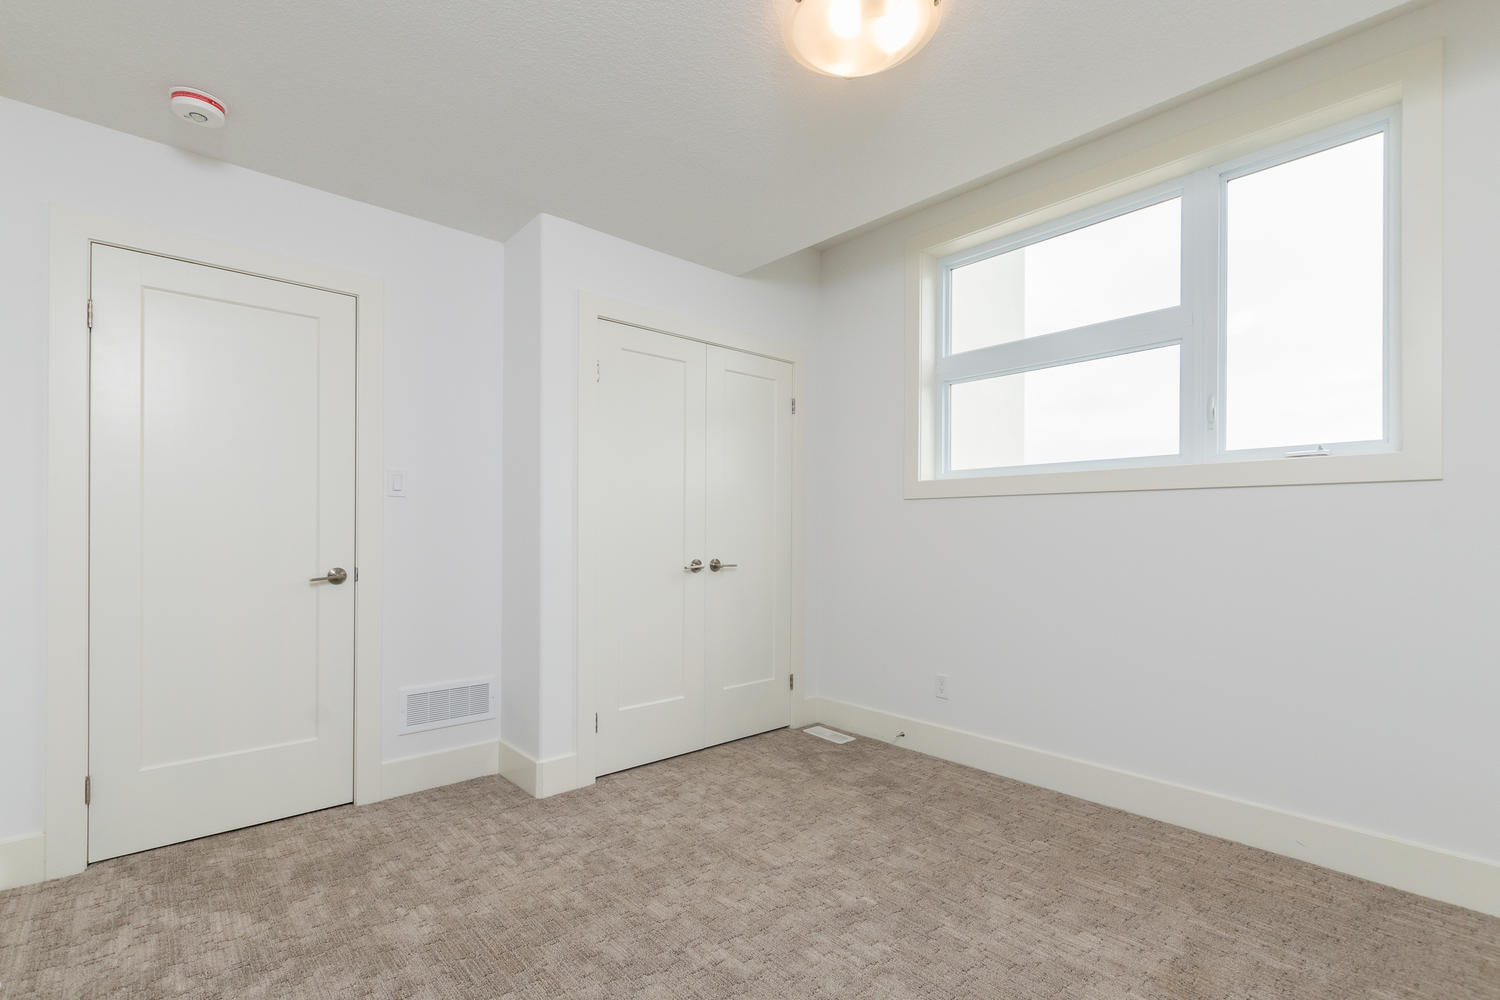 Royal Premier Homes - Eco Friendly Home Builders London - Frontier - Empty Room